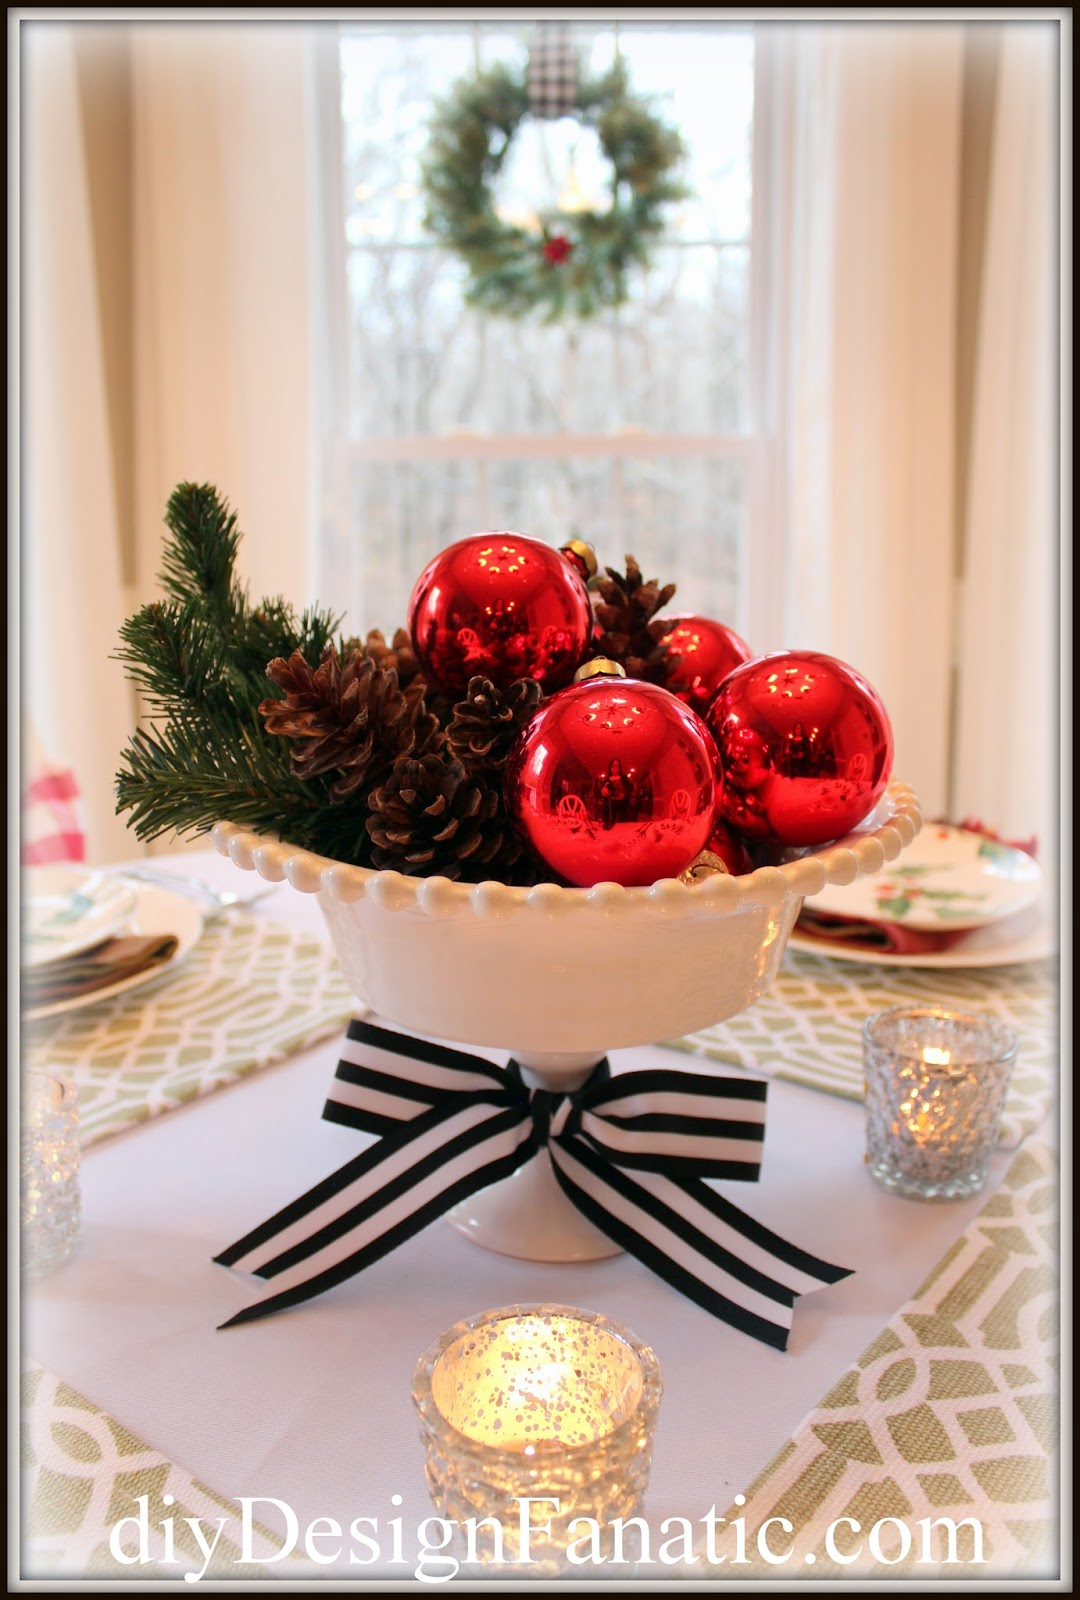 diy Design Fanatic: The Breakfast Room Is Ready For Christmas